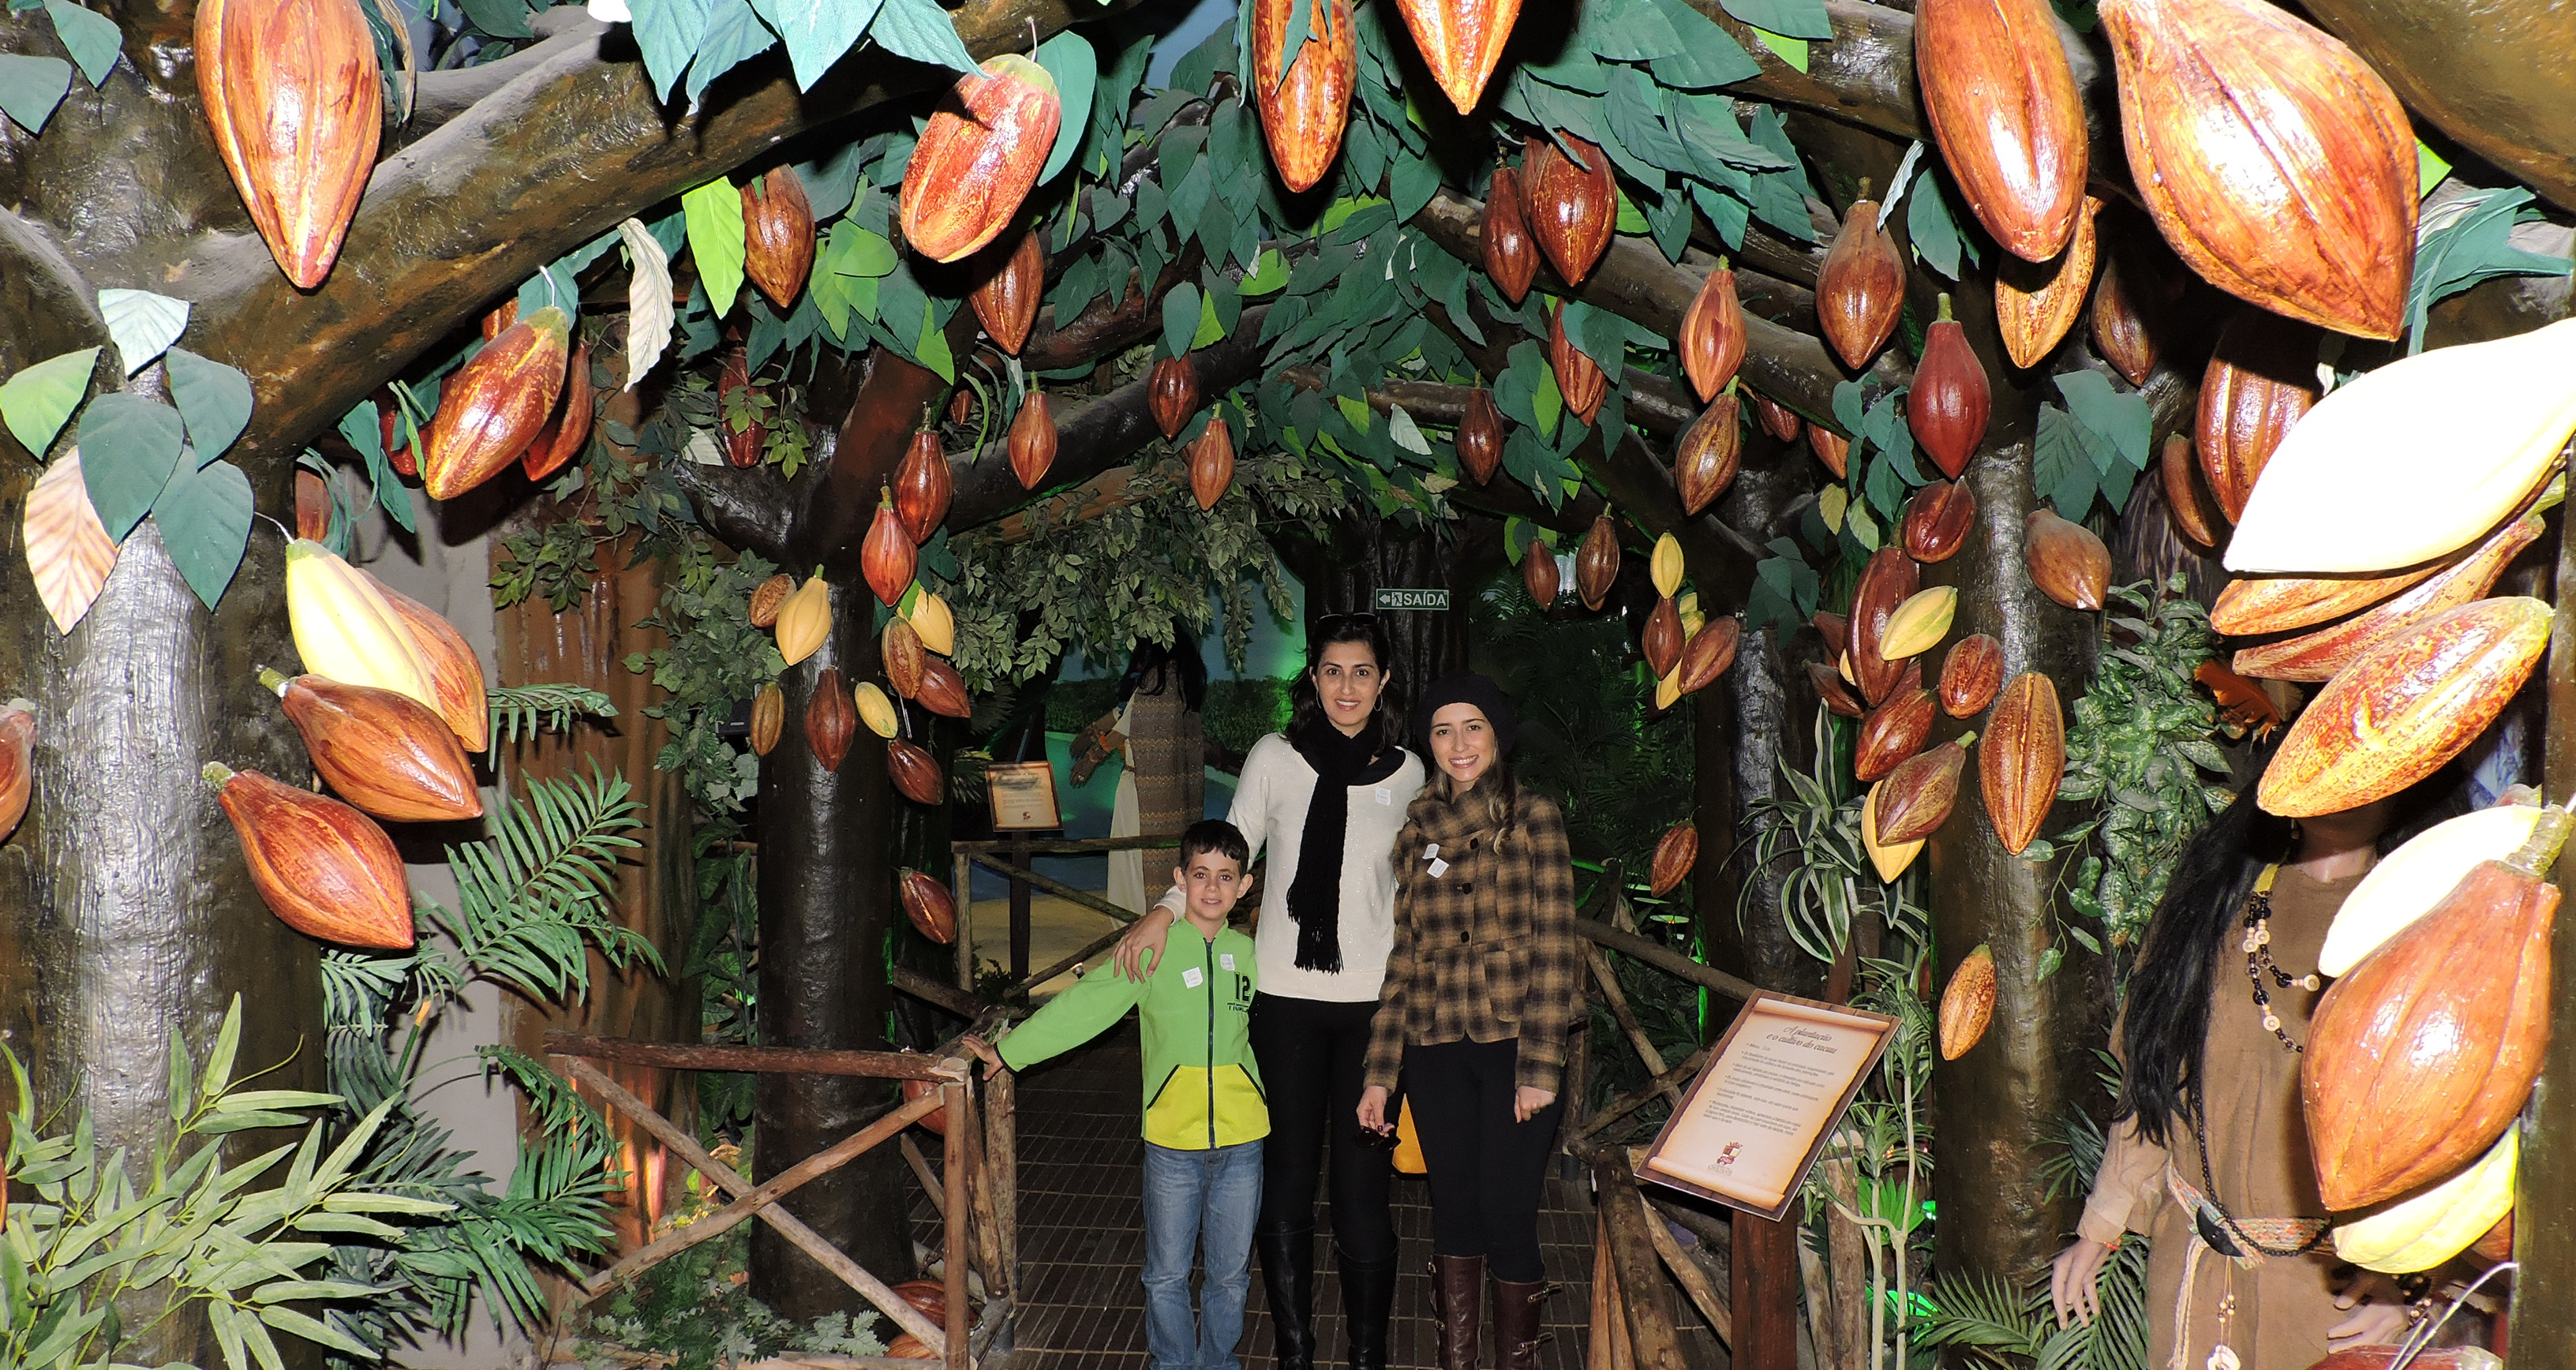 gramado-reino-do-chocolate-caracol